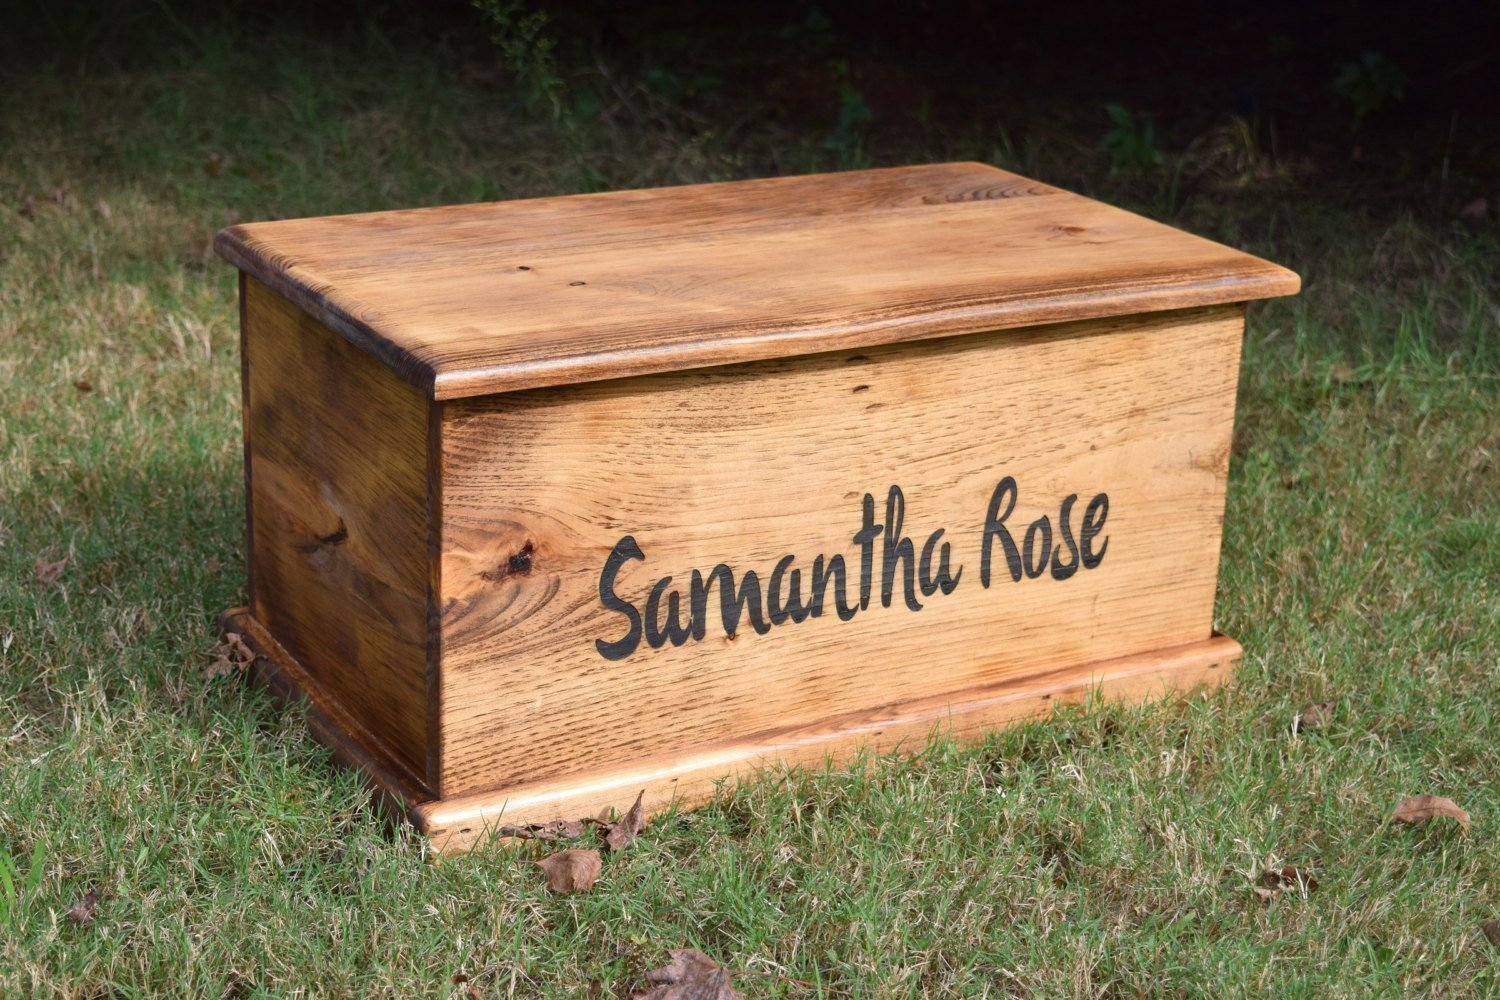 Laser Engraved Personalized Kids Toy Box - Engraved Toy Box - Personalized Toy Box - Children's Toy Box - Kids Memory Box - Gift for Kids - Wood Toy Box - Treasure Chest by Country Barn Babe (Image #5)